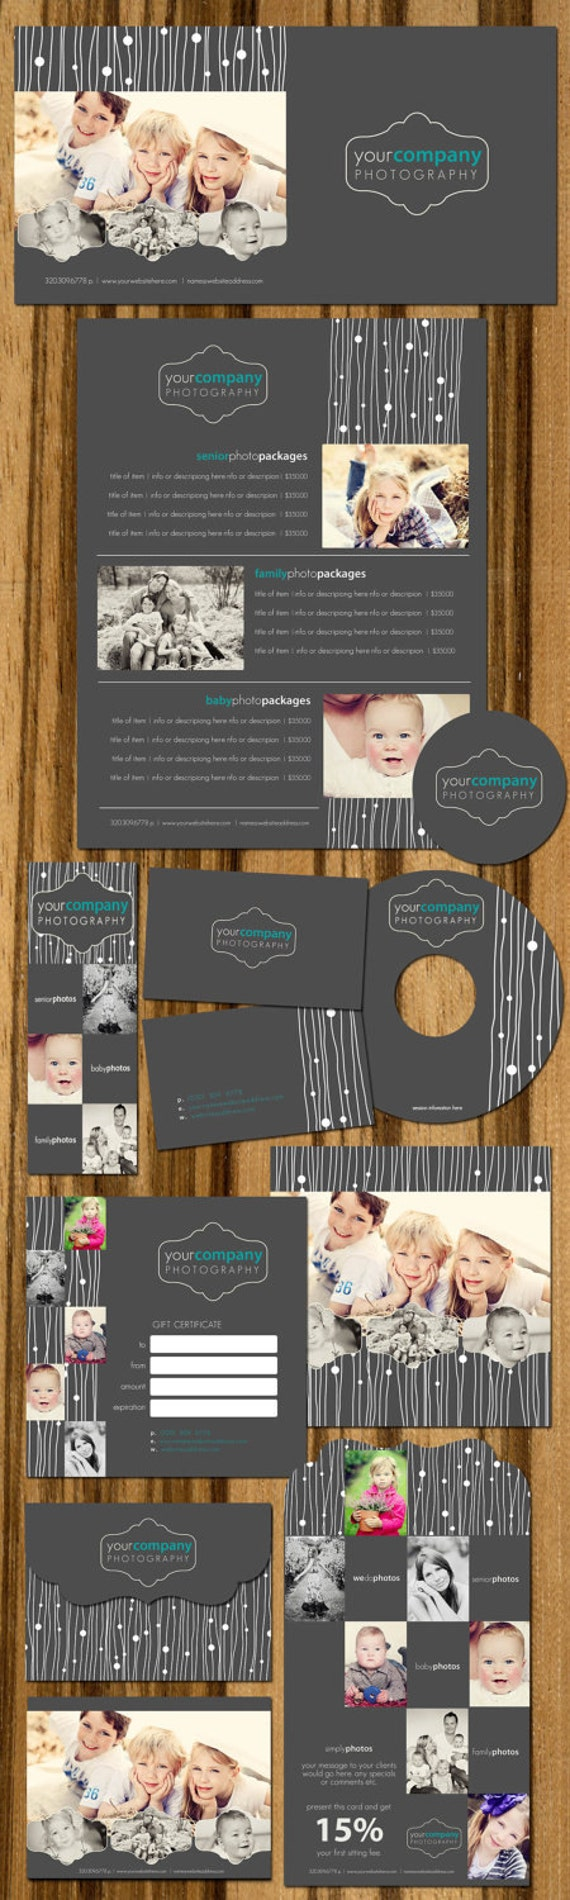 Boutique Marketing Package - Lines of Style- Photography